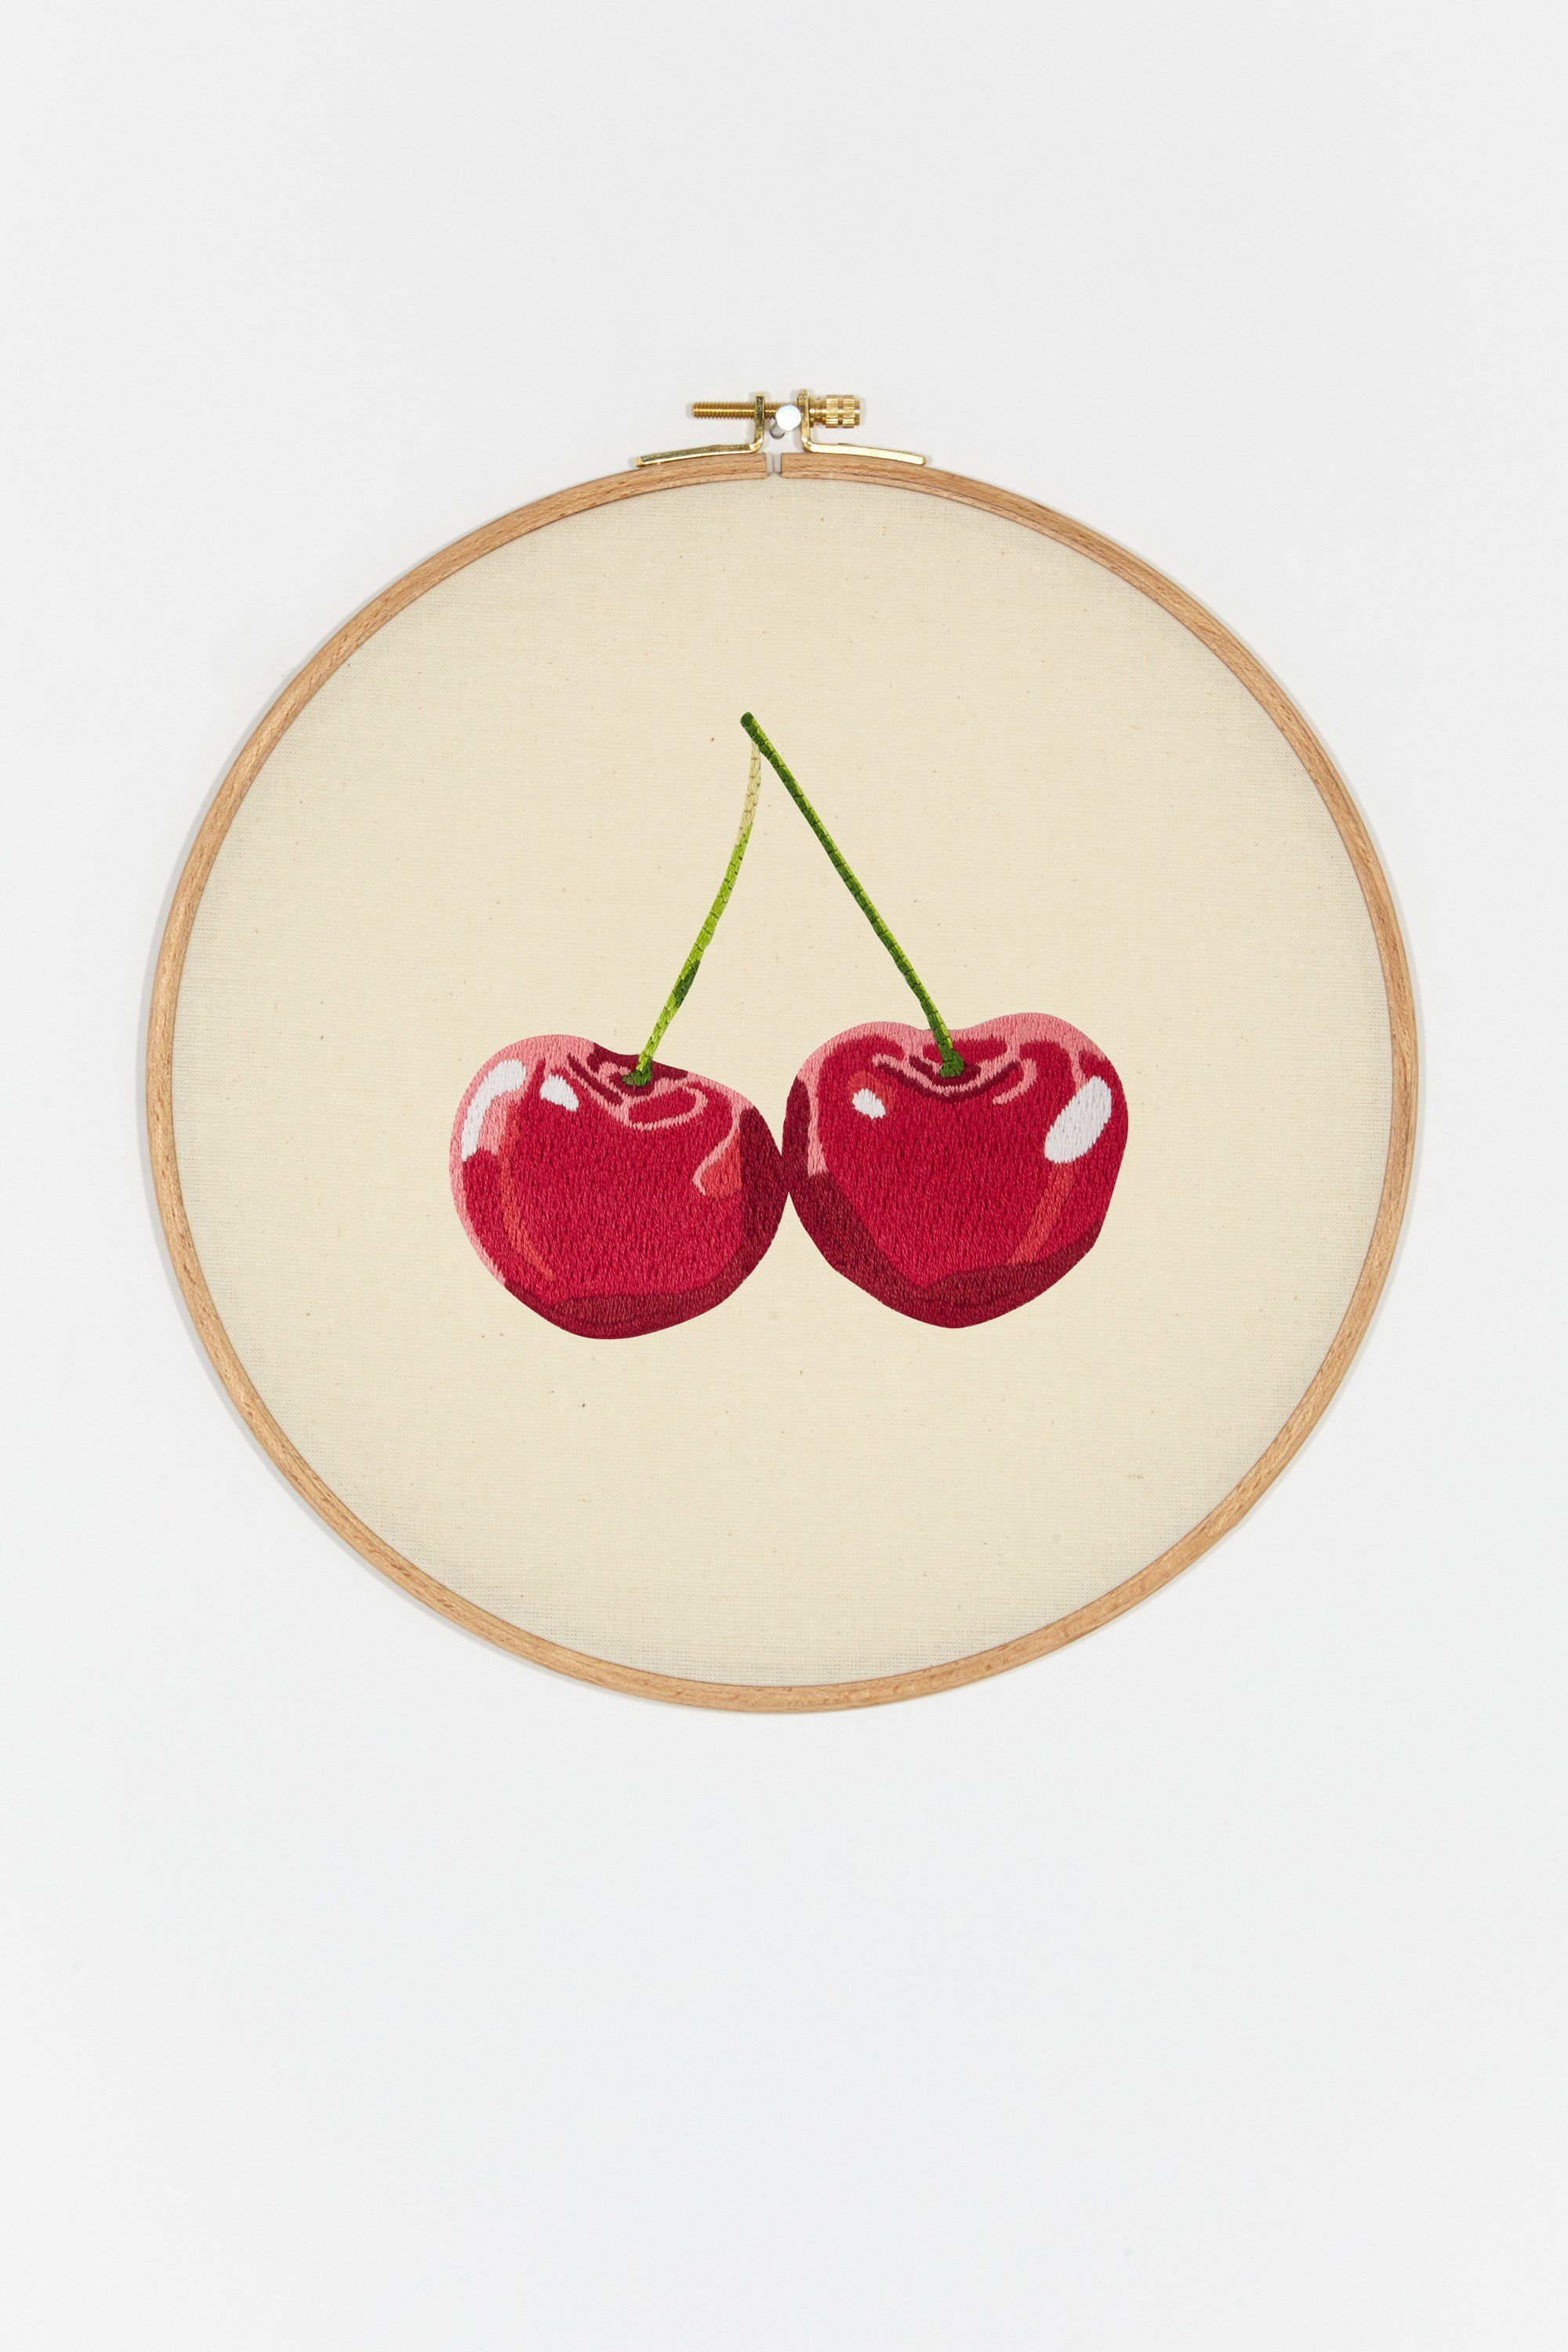 Cherries Pattern In 2020 Free Embroidery Embroidery